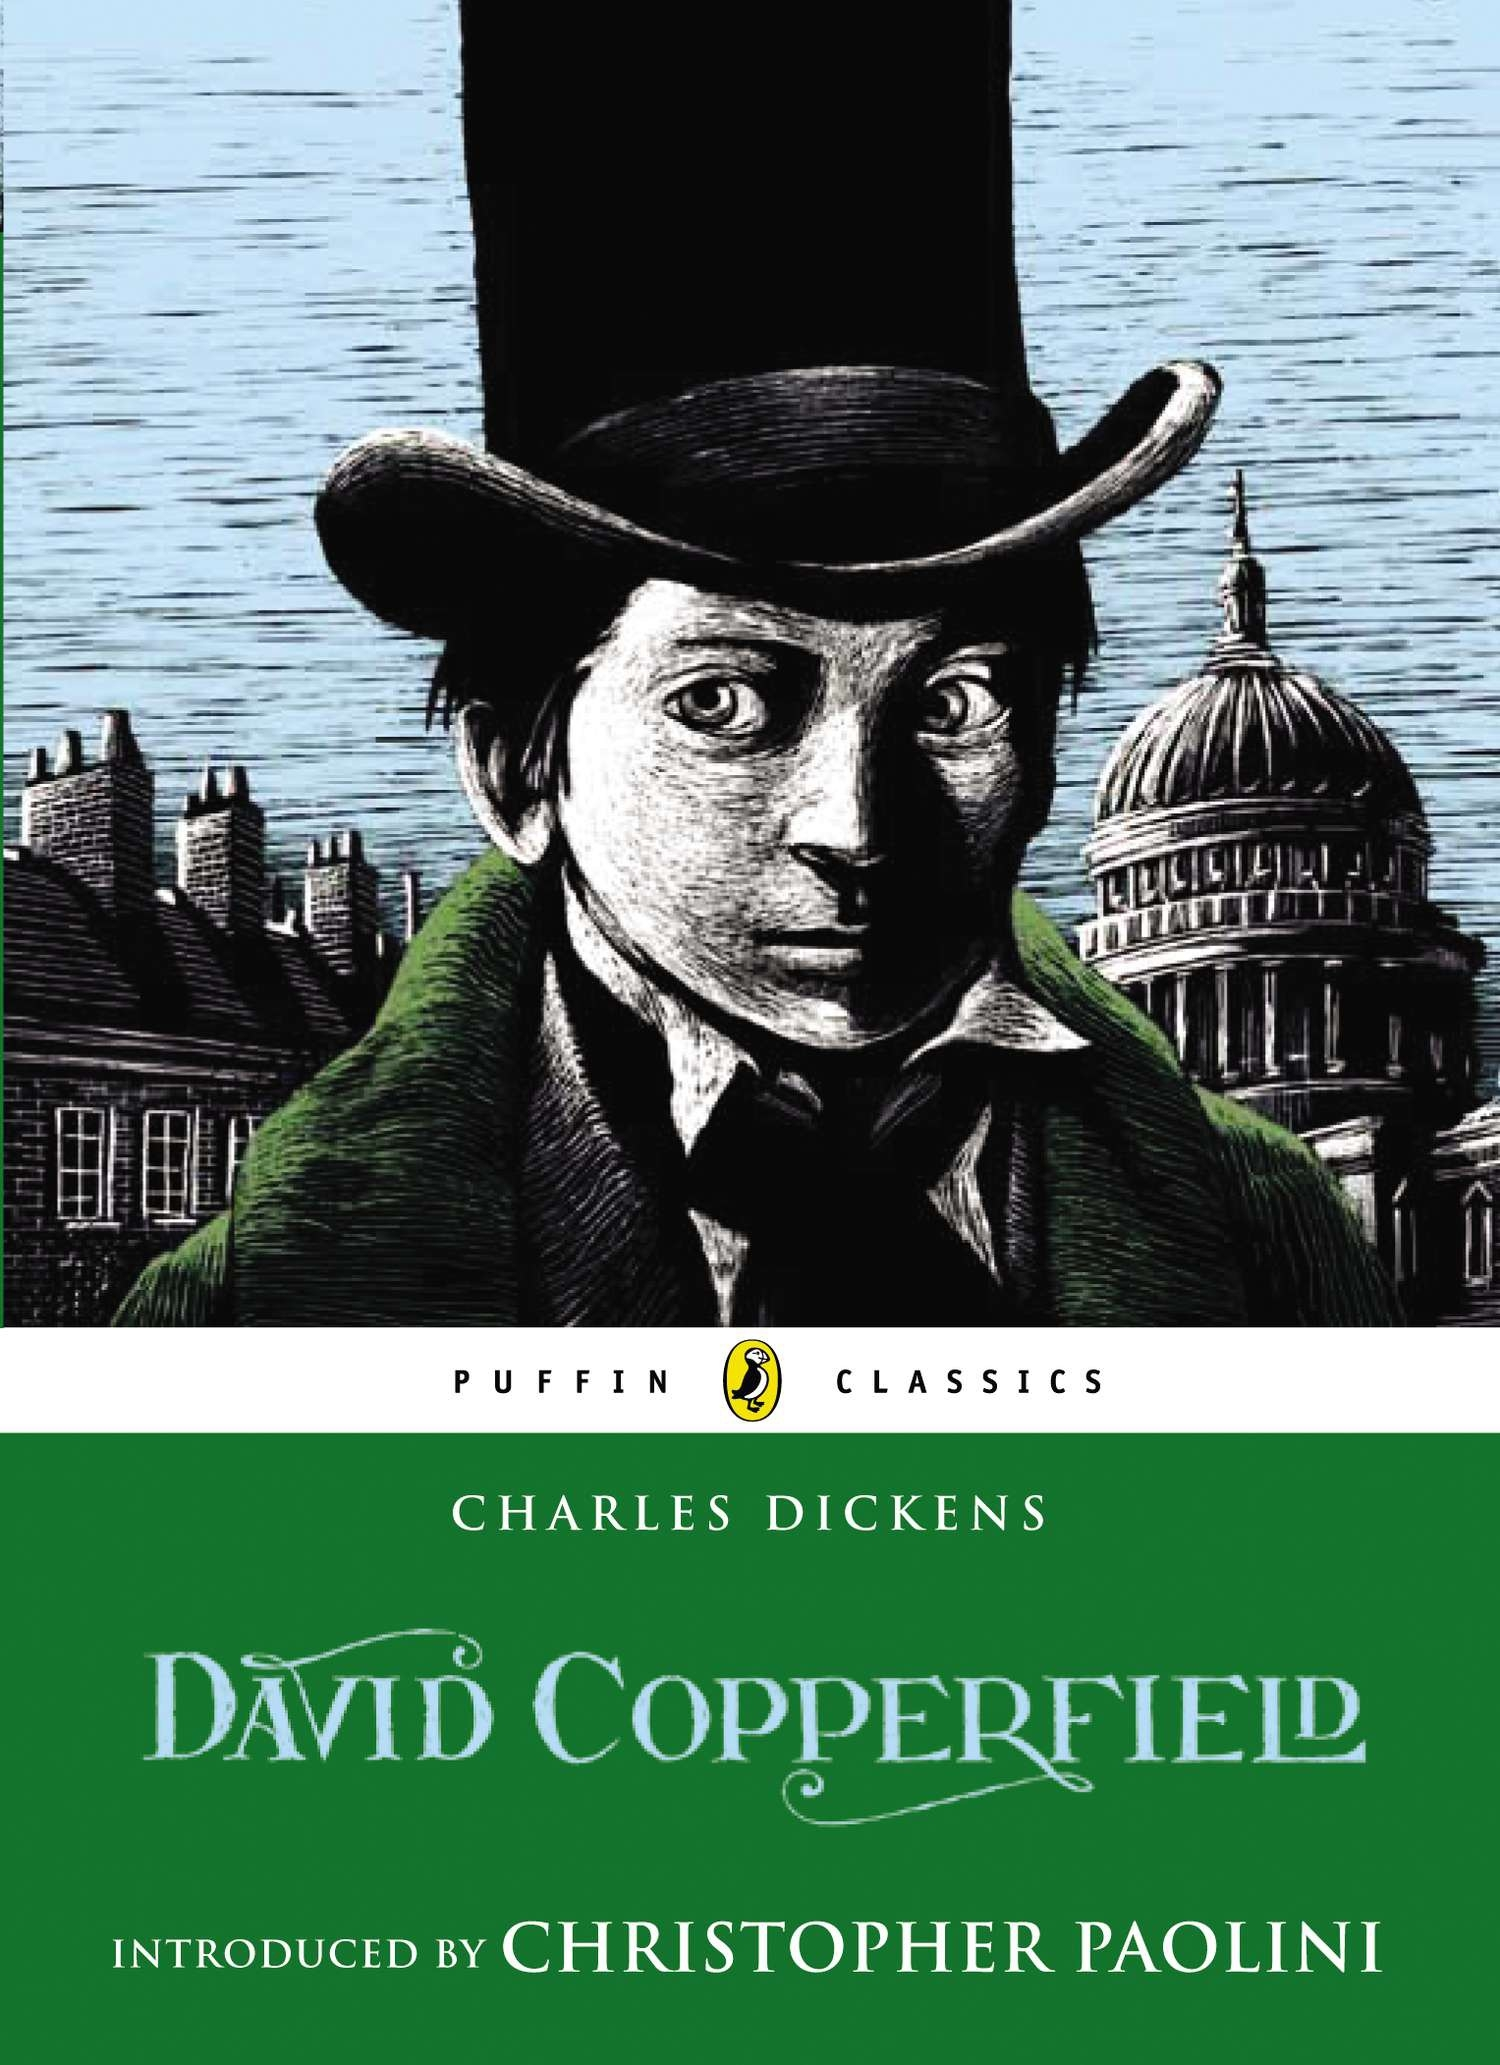 david copperfield by charles dickens penguin books  david copperfield